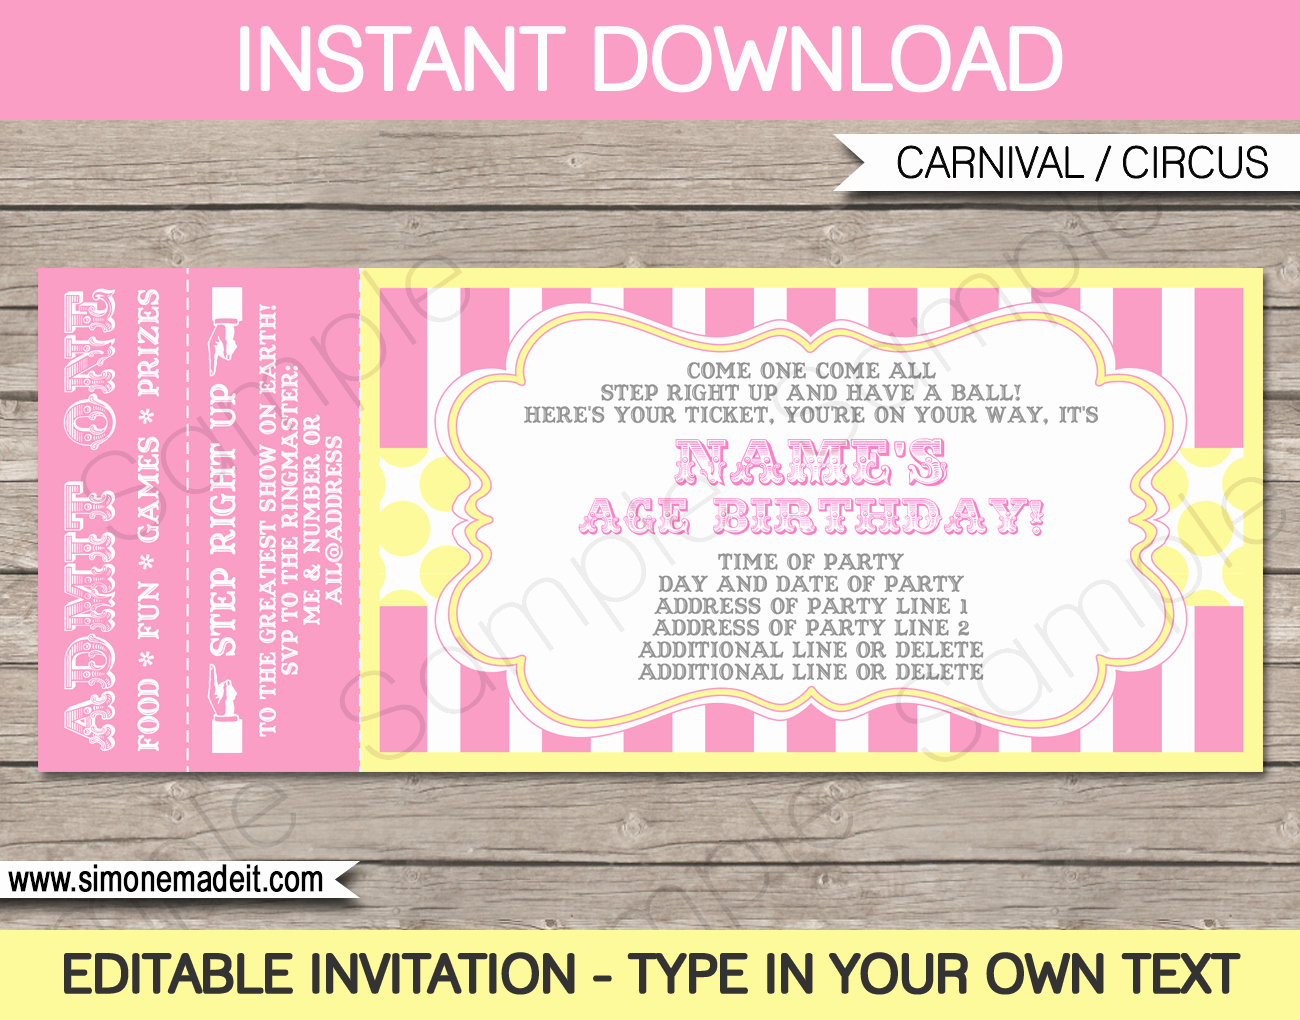 Carnival Ticket Invitation Template Free New Carnival Birthday Ticket Invitations Template Carnival